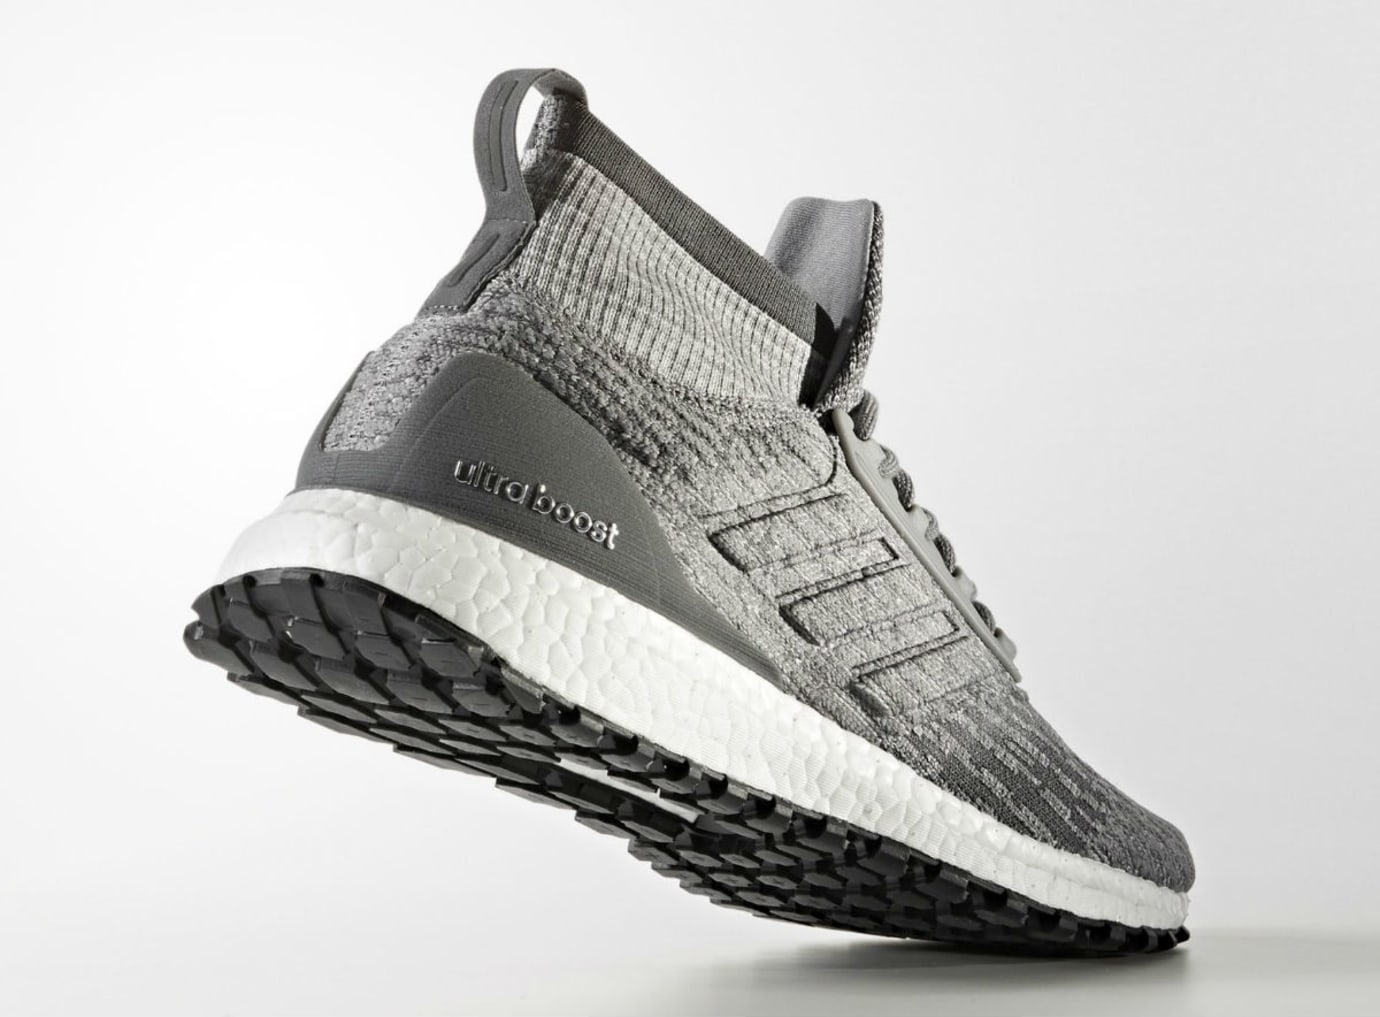 new product 06c9c 9556d Adidas Ultra Boost ATR Mid Grey Release Date CG3000 | Sole Collector